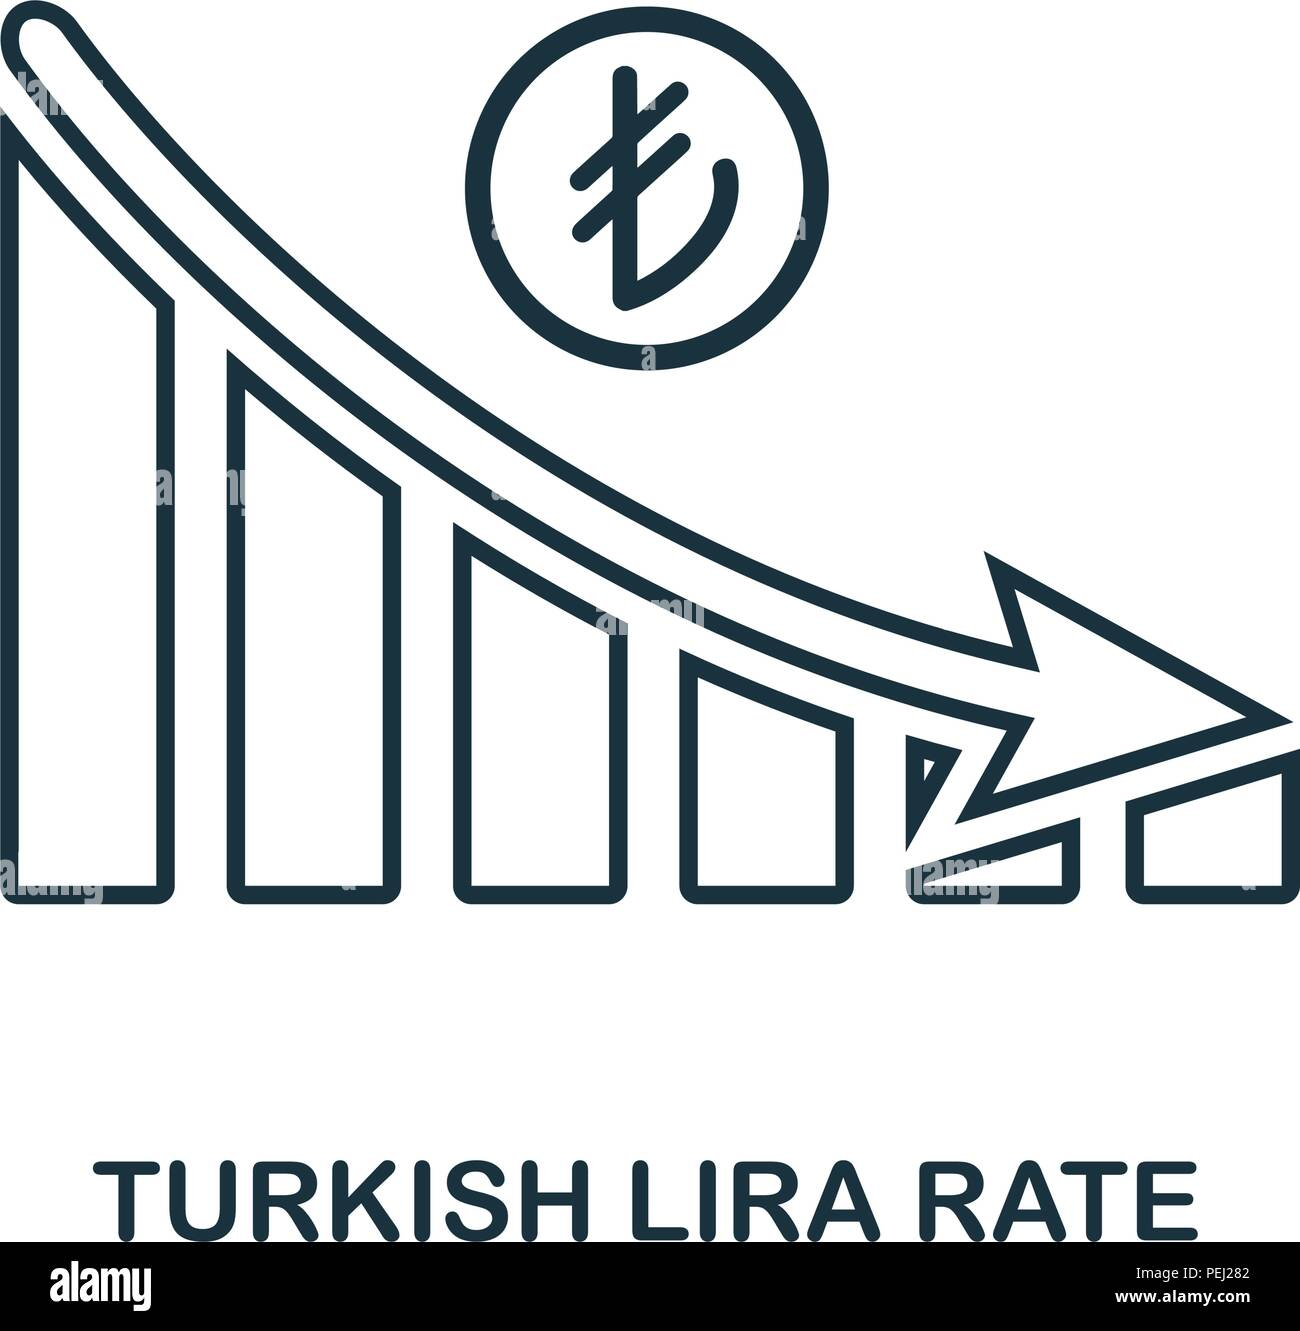 Turkish Lira Rate Decrease Graphic icon. Mobile app, printing, web site icon. Simple element sing. Monochrome Turkish Lira Rate Decrease Graphic icon  Stock Vector